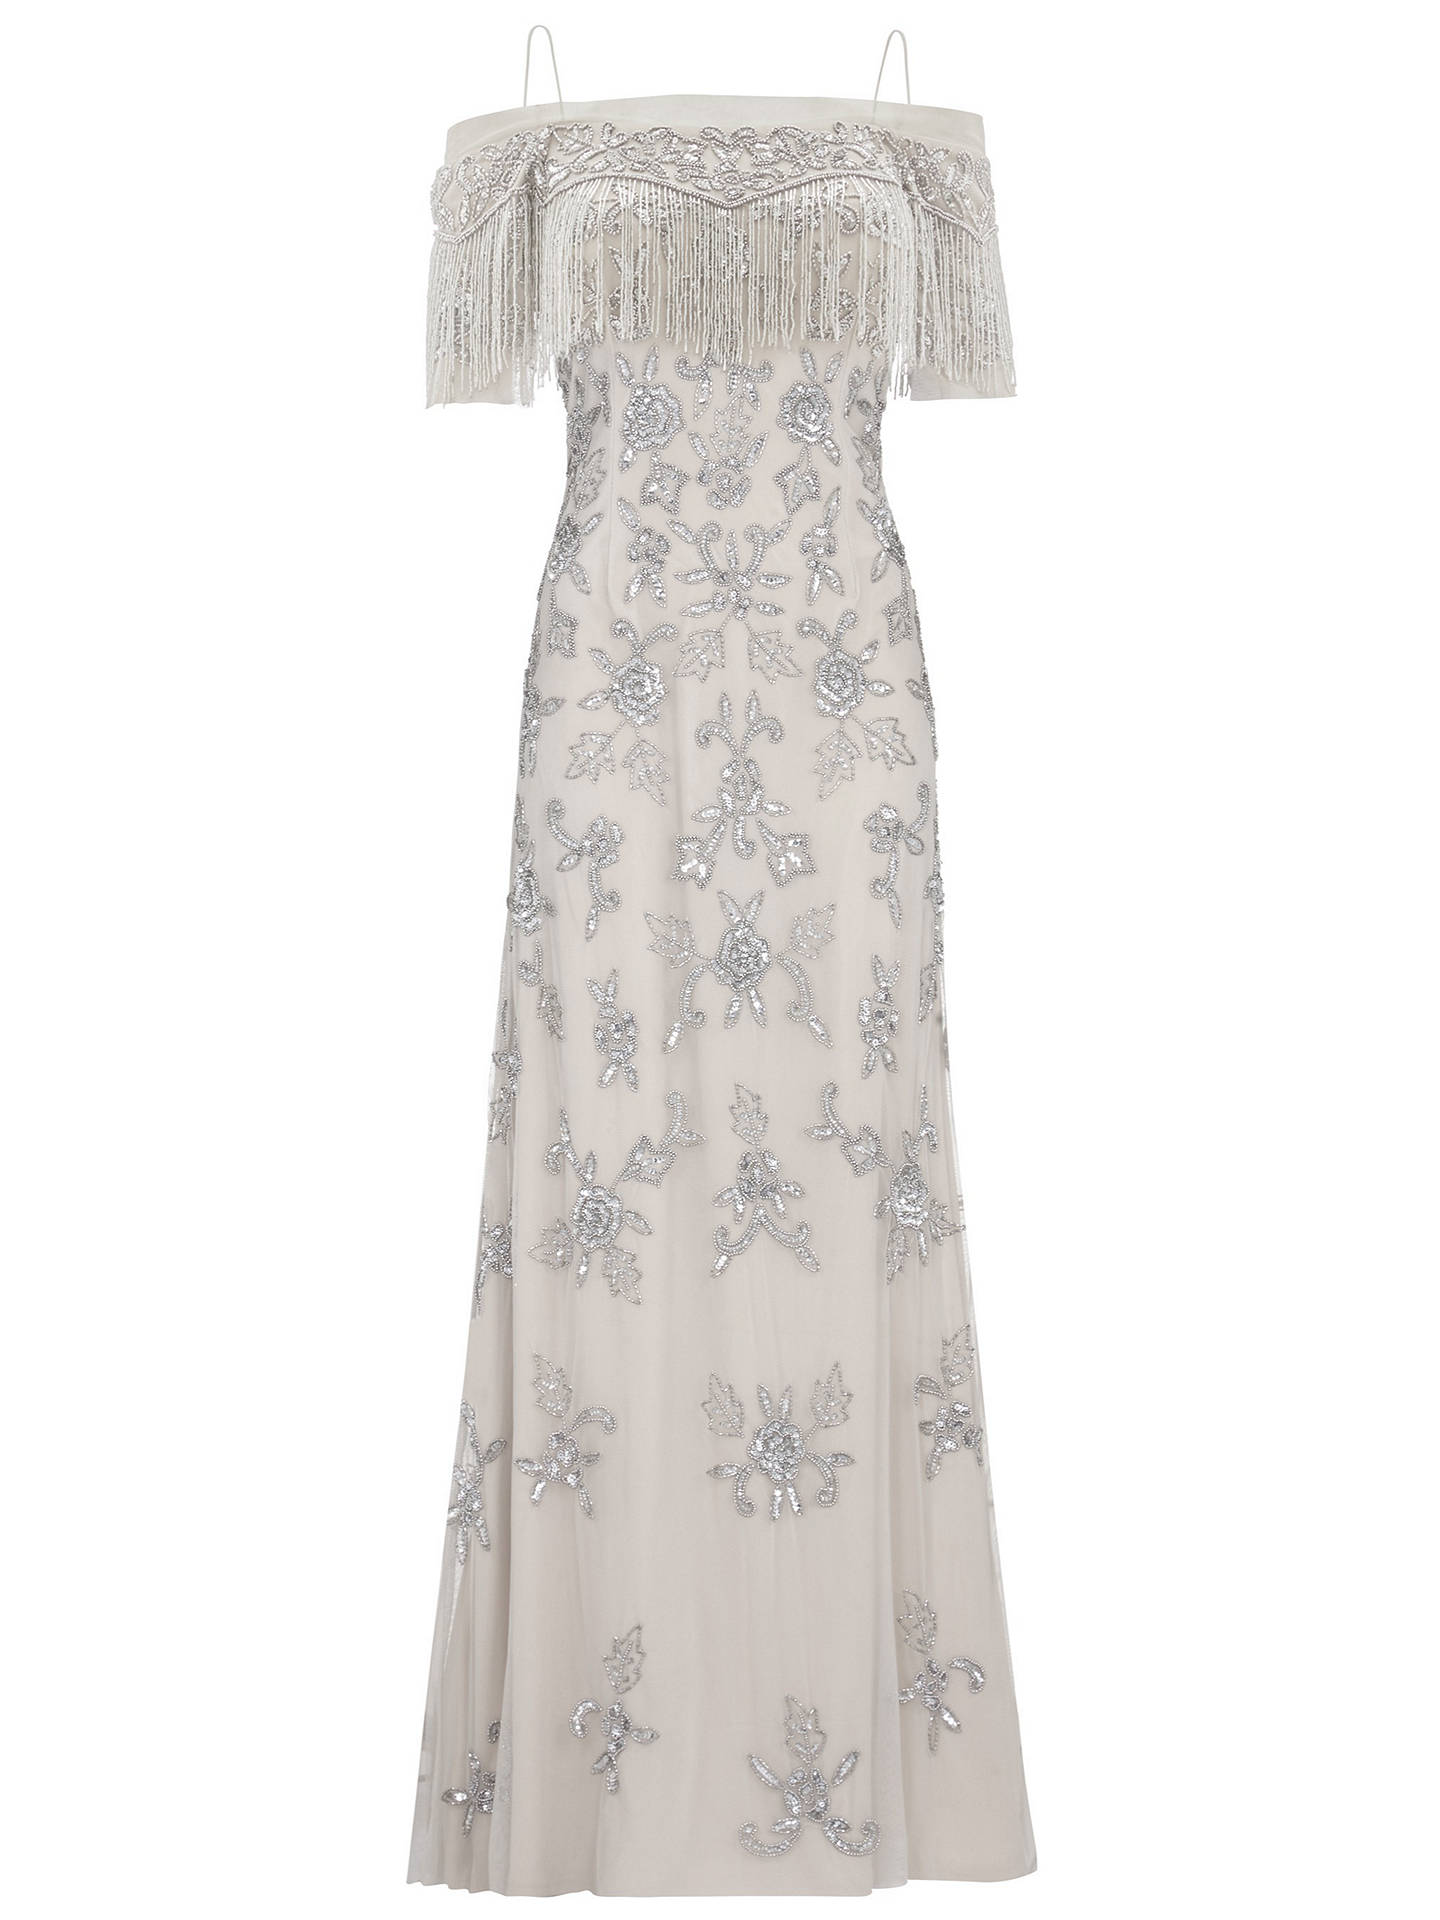 BuyAdrianna Papell Long Mermaid Fringe Dress, Silver, 8 Online at johnlewis.com